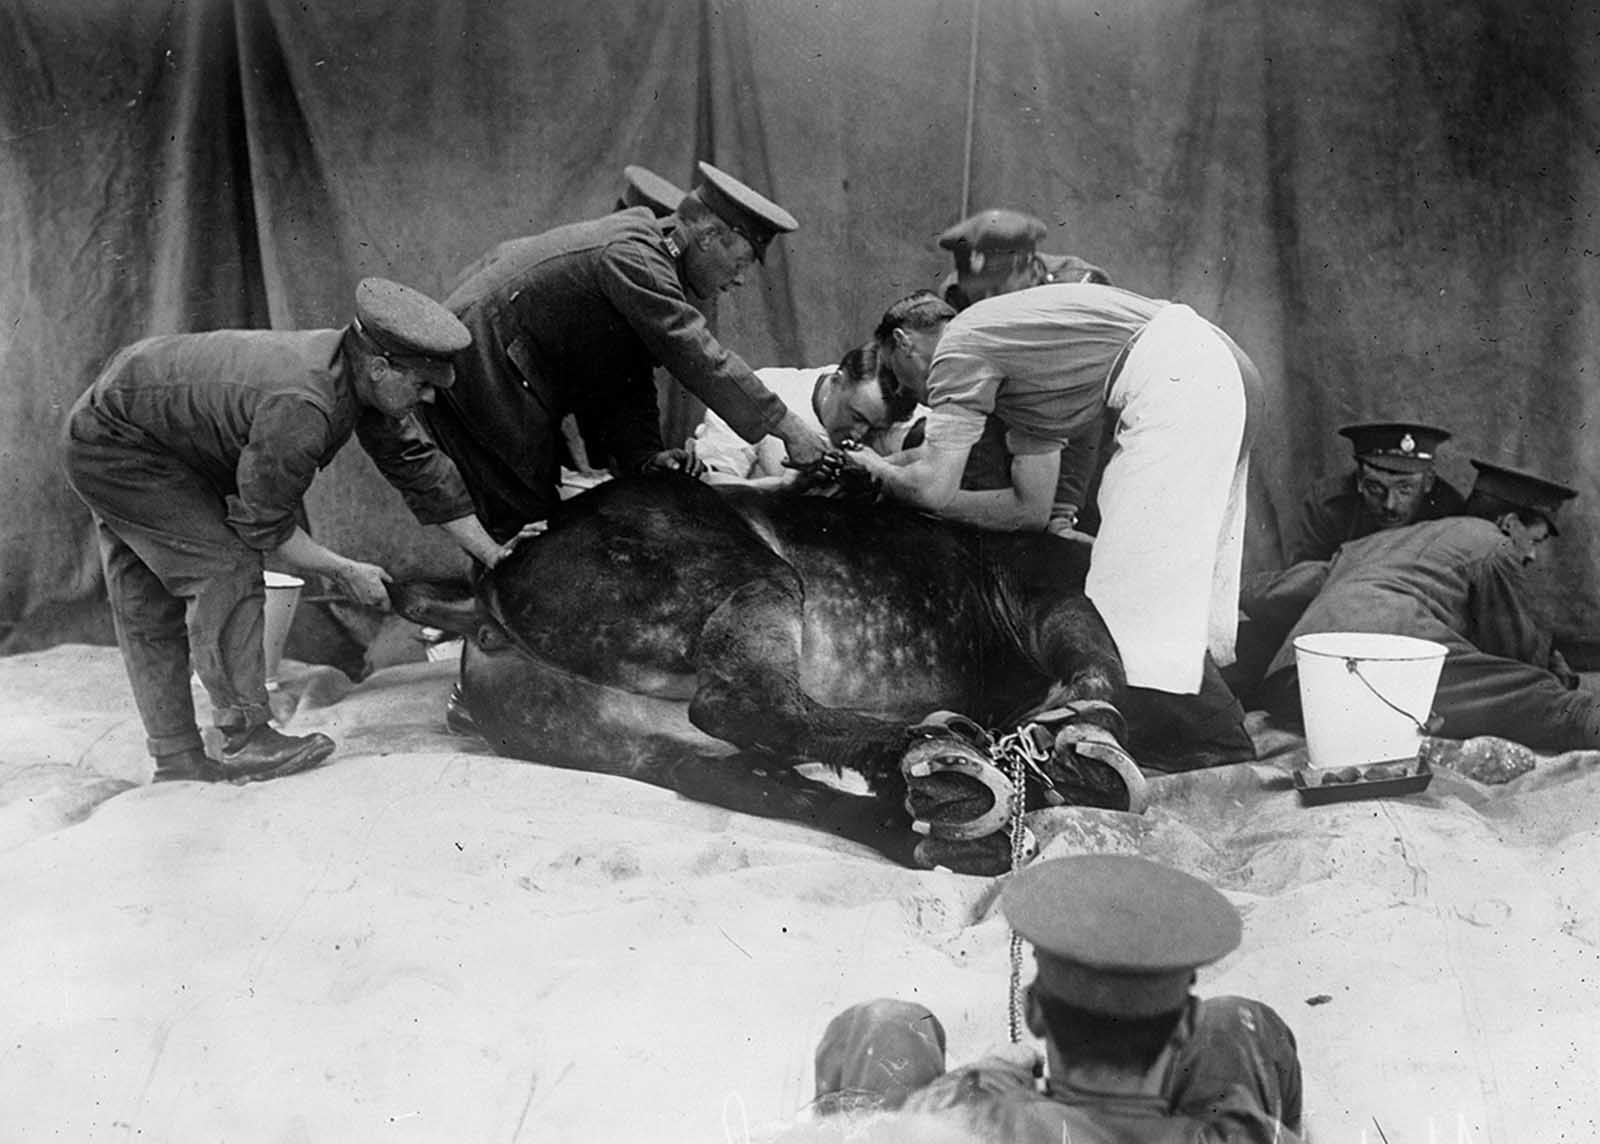 A horse is restrained while it is attended to at a veterinary hospital in 1916.